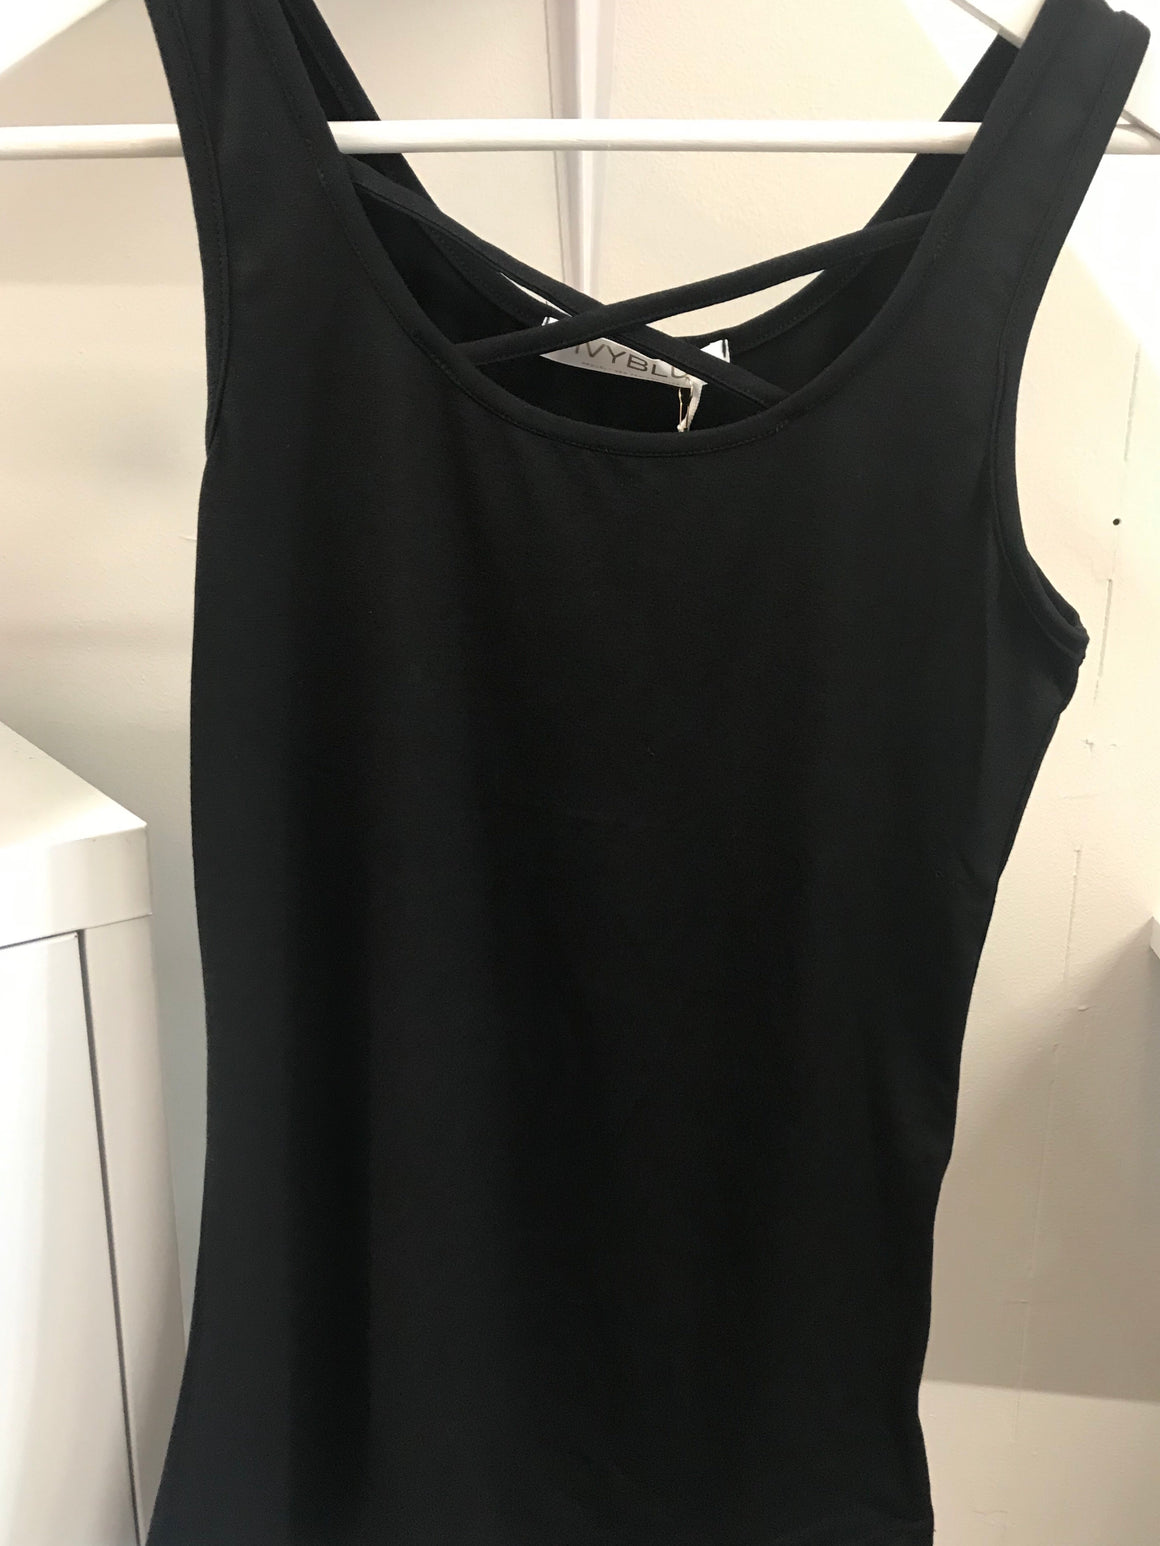 IvyBlu Eve Tank Black - Trio Boutique Geraldine